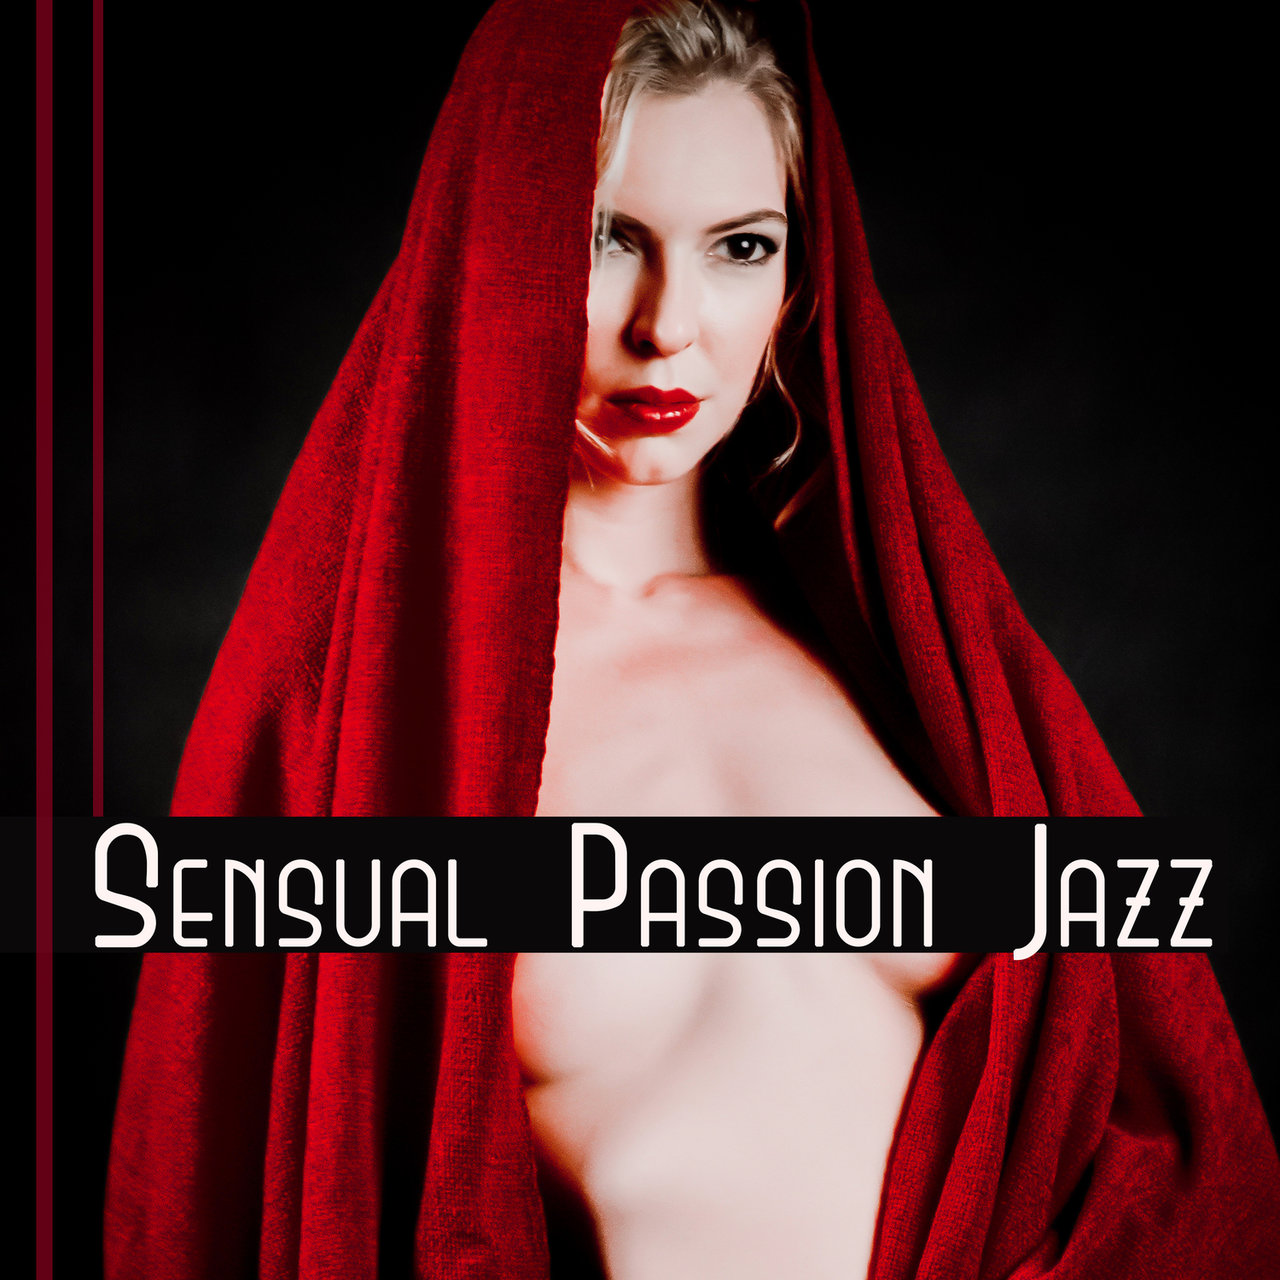 Listen To Sensual Passion Jazz Hot Night Jazz Erotic Date Romantic Evening Music Smooth Sound For Lovers By Forbidden Desires Chill Academy On Tidal